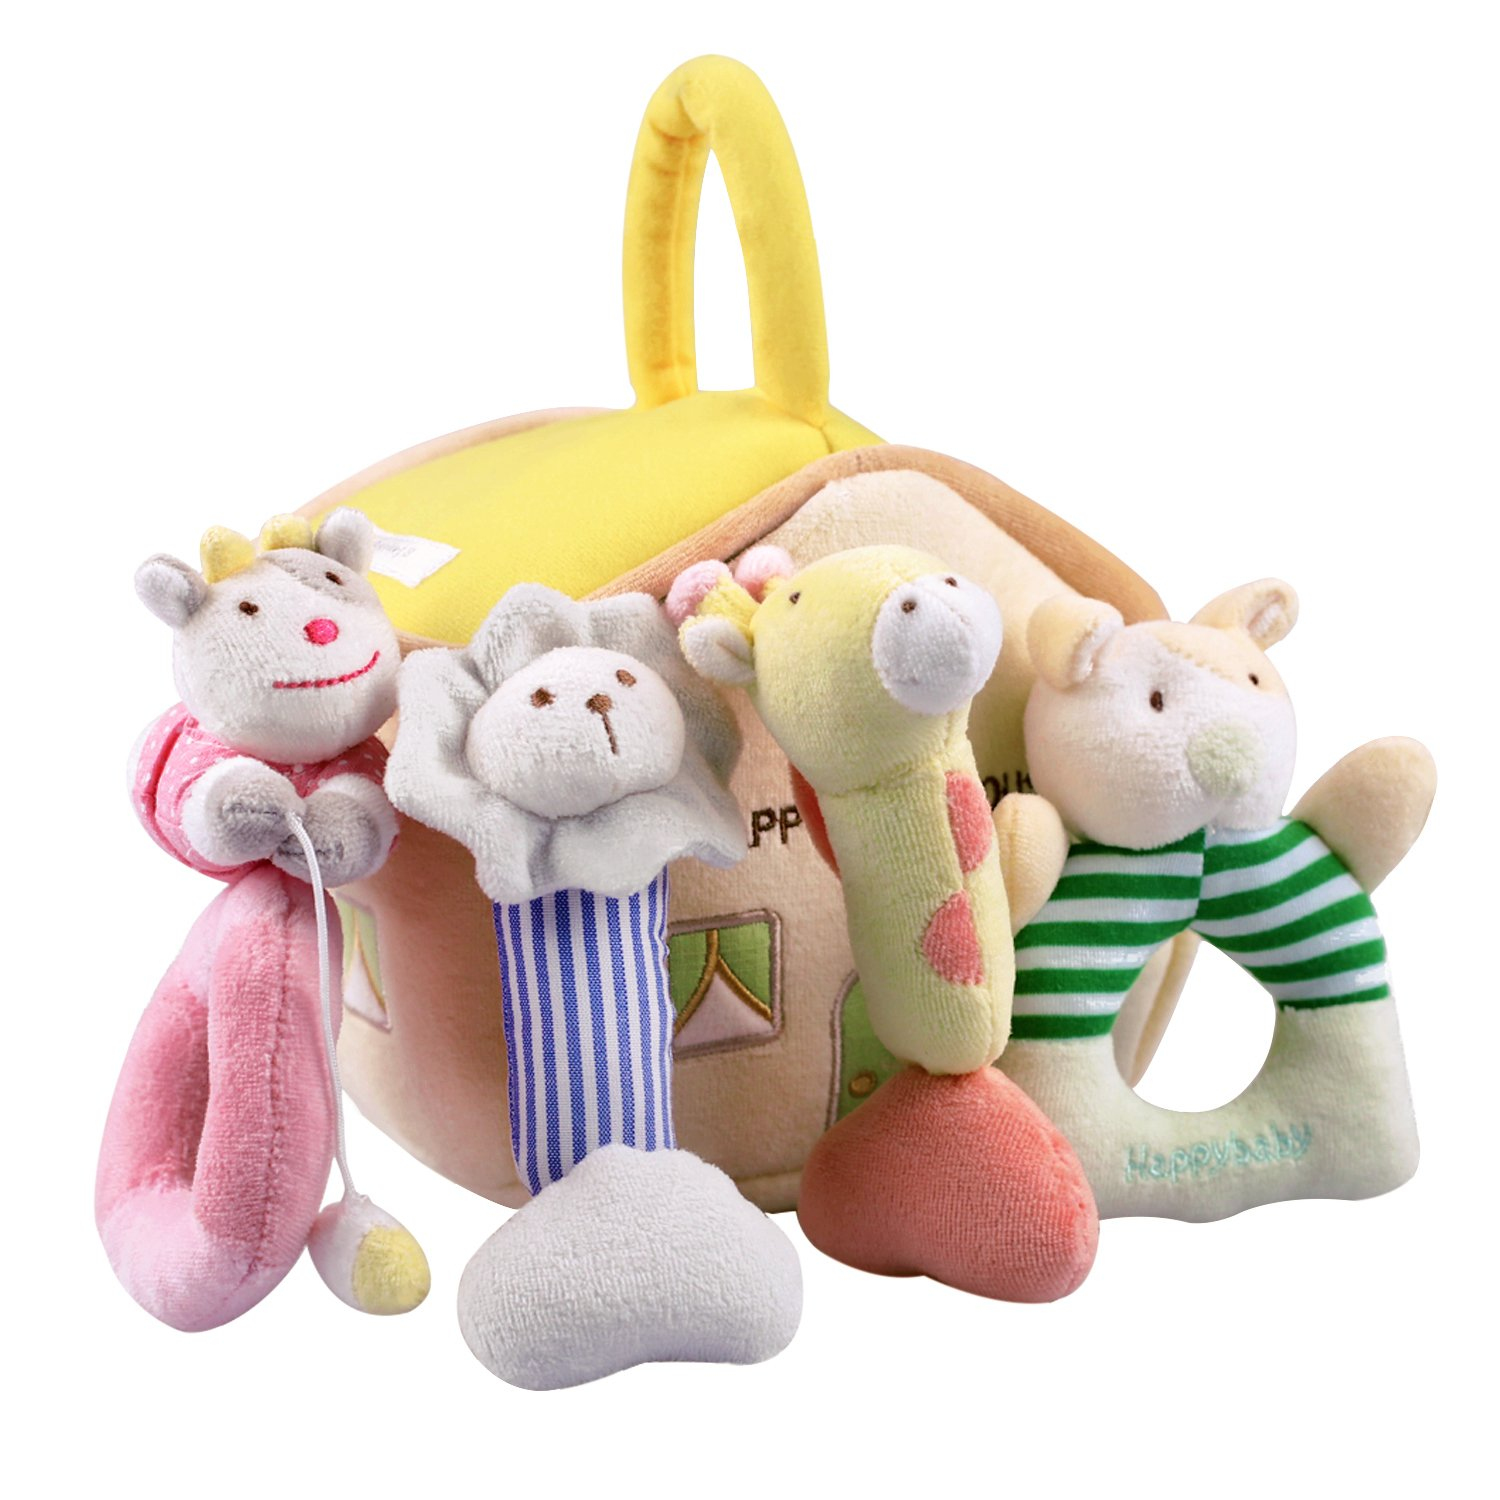 Infant 9 Newborn 6 Natural Cotton Teether and Shaker iPlay Cute Stuffed Animals w// Sounds for 3 Girl 12 Month Boy iLearn 4 Plush Baby Soft Rattles Set 10 Developmental Toy w// Hand Grip